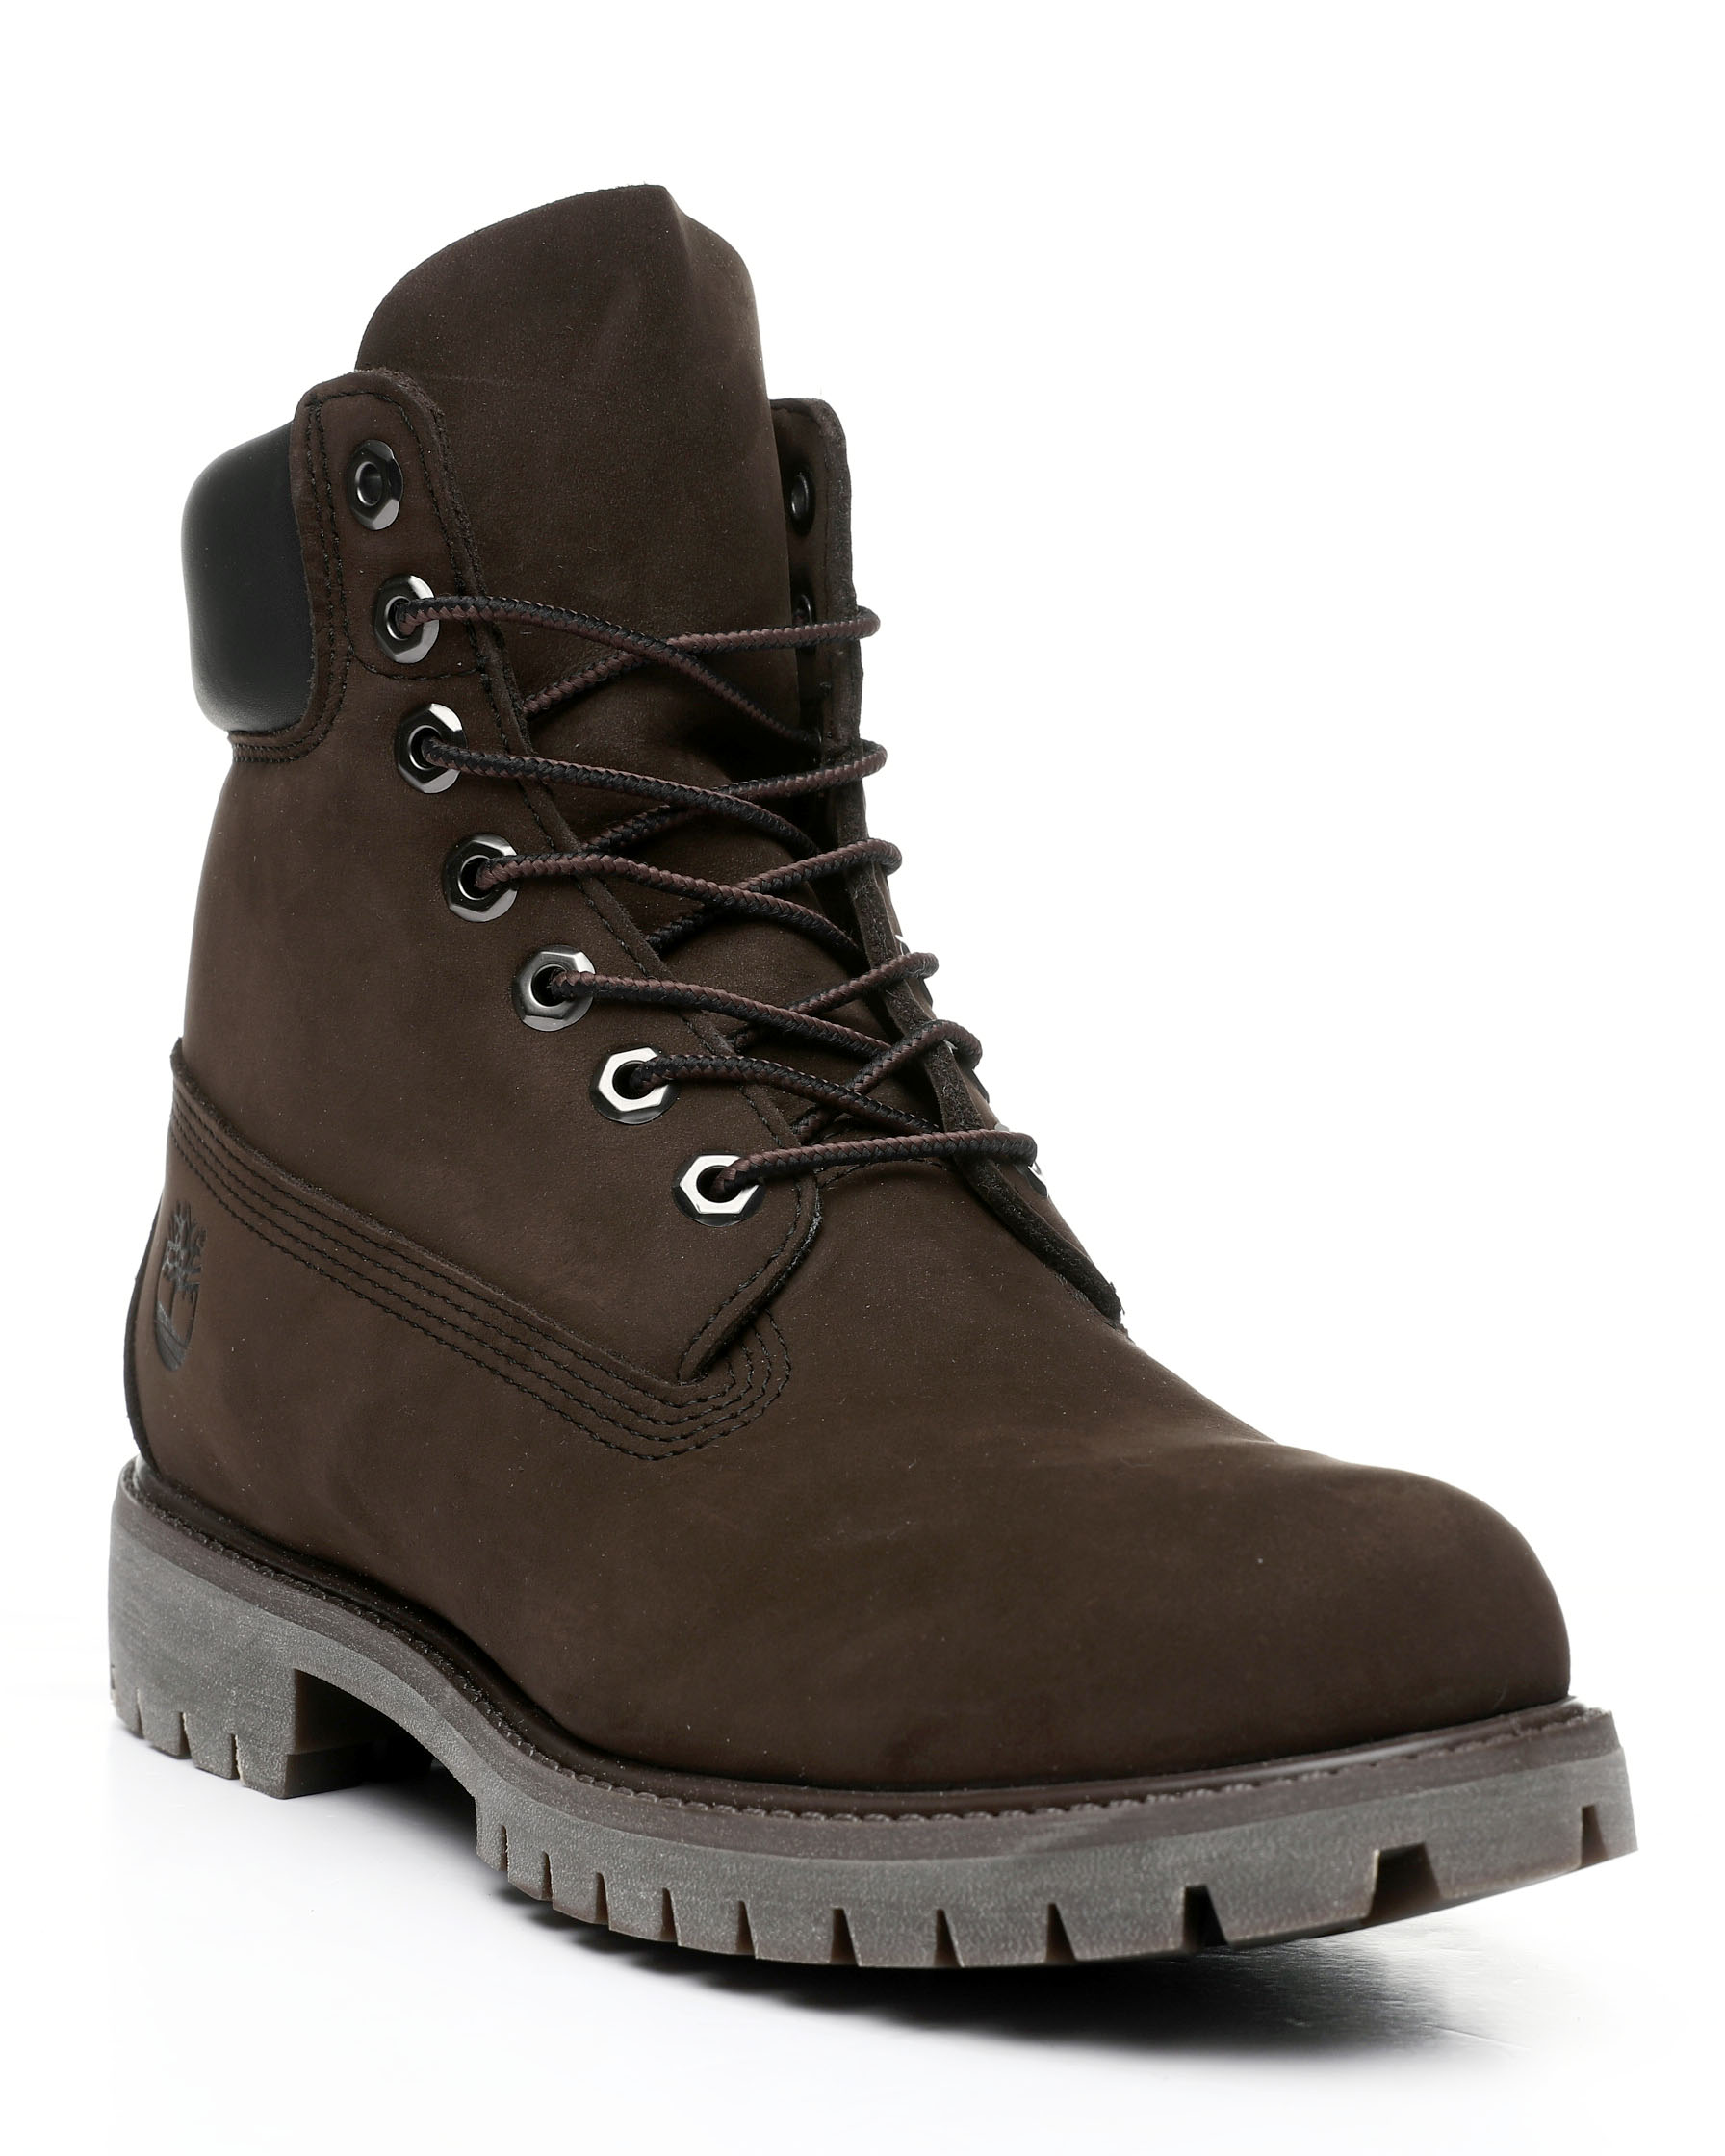 Buy Timberland Icon 6 Inch Premium Boots Men's Footwear from